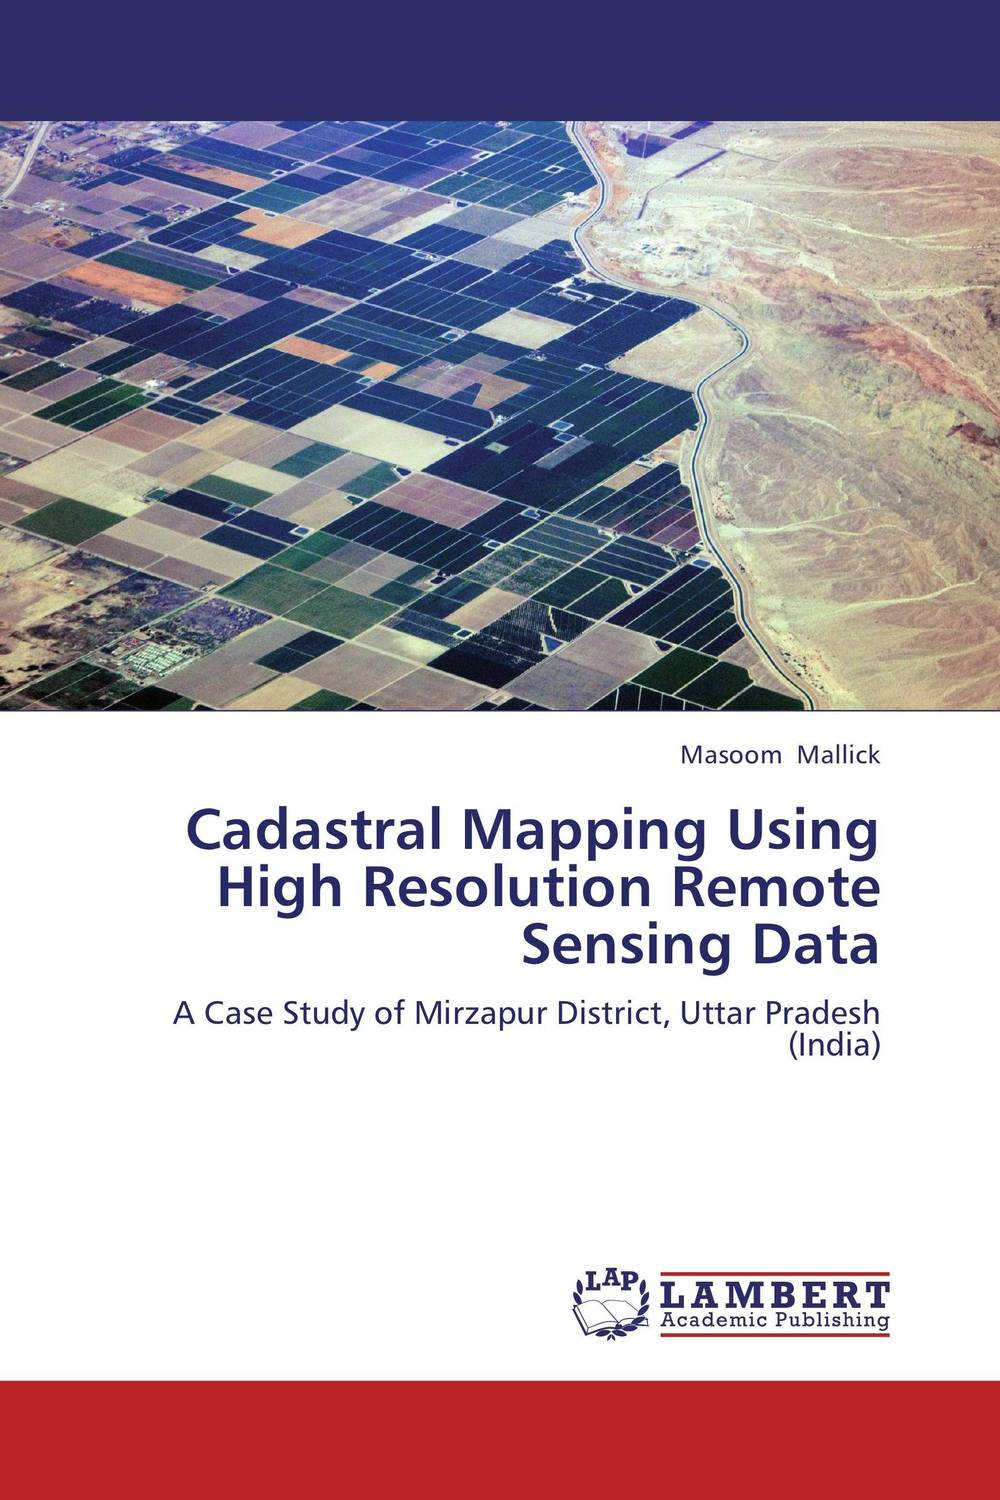 Cadastral Mapping Using High Resolution Remote Sensing Data pastoralism and agriculture pennar basin india